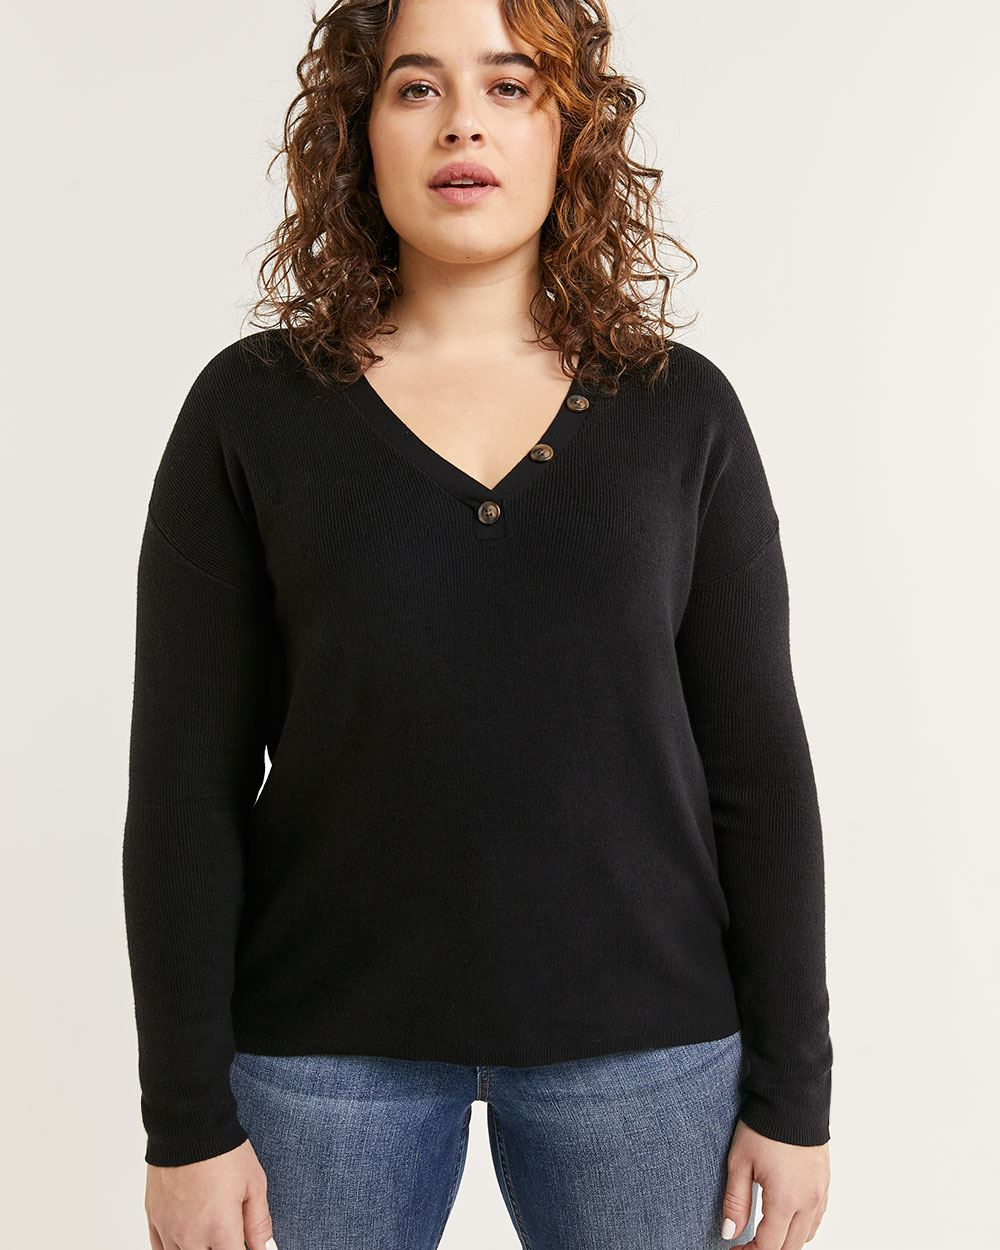 Long Sleeve V-Neck Sweater with Decorative Buttons